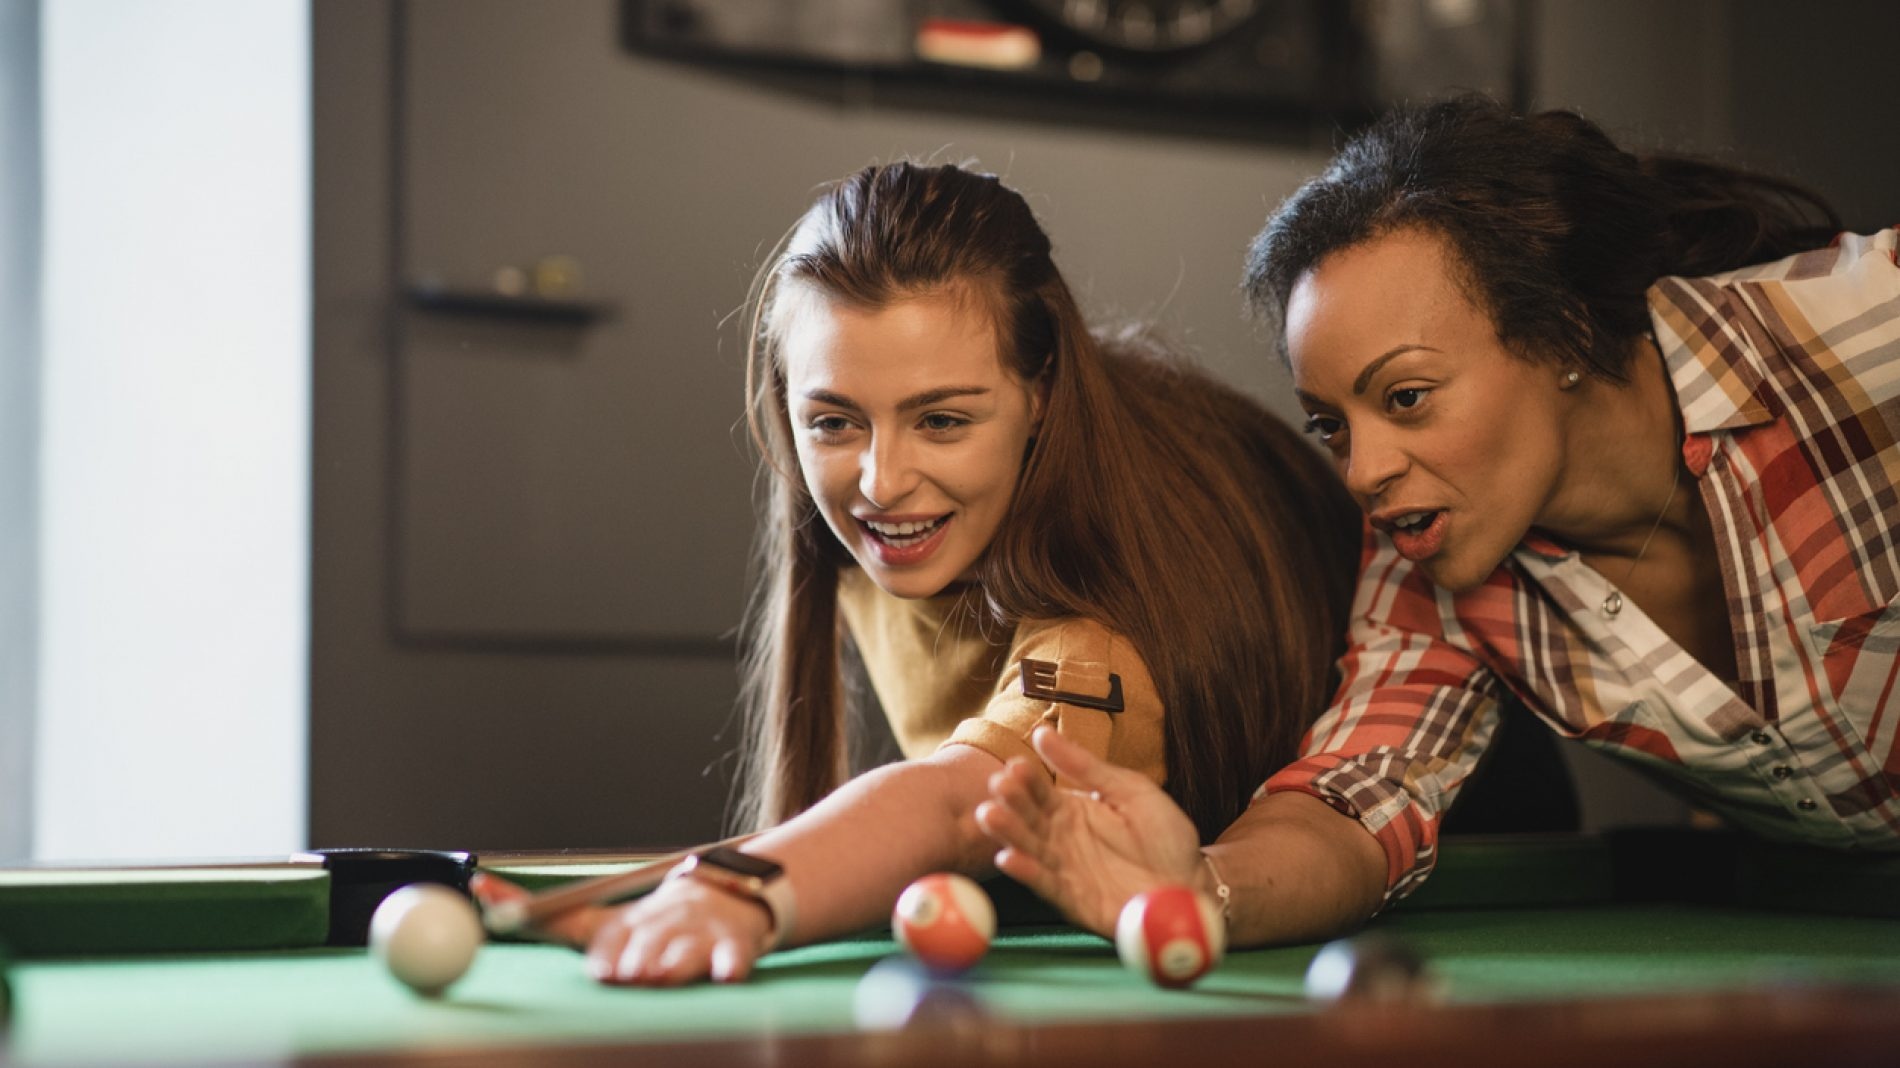 Two young people playing pool in a pub